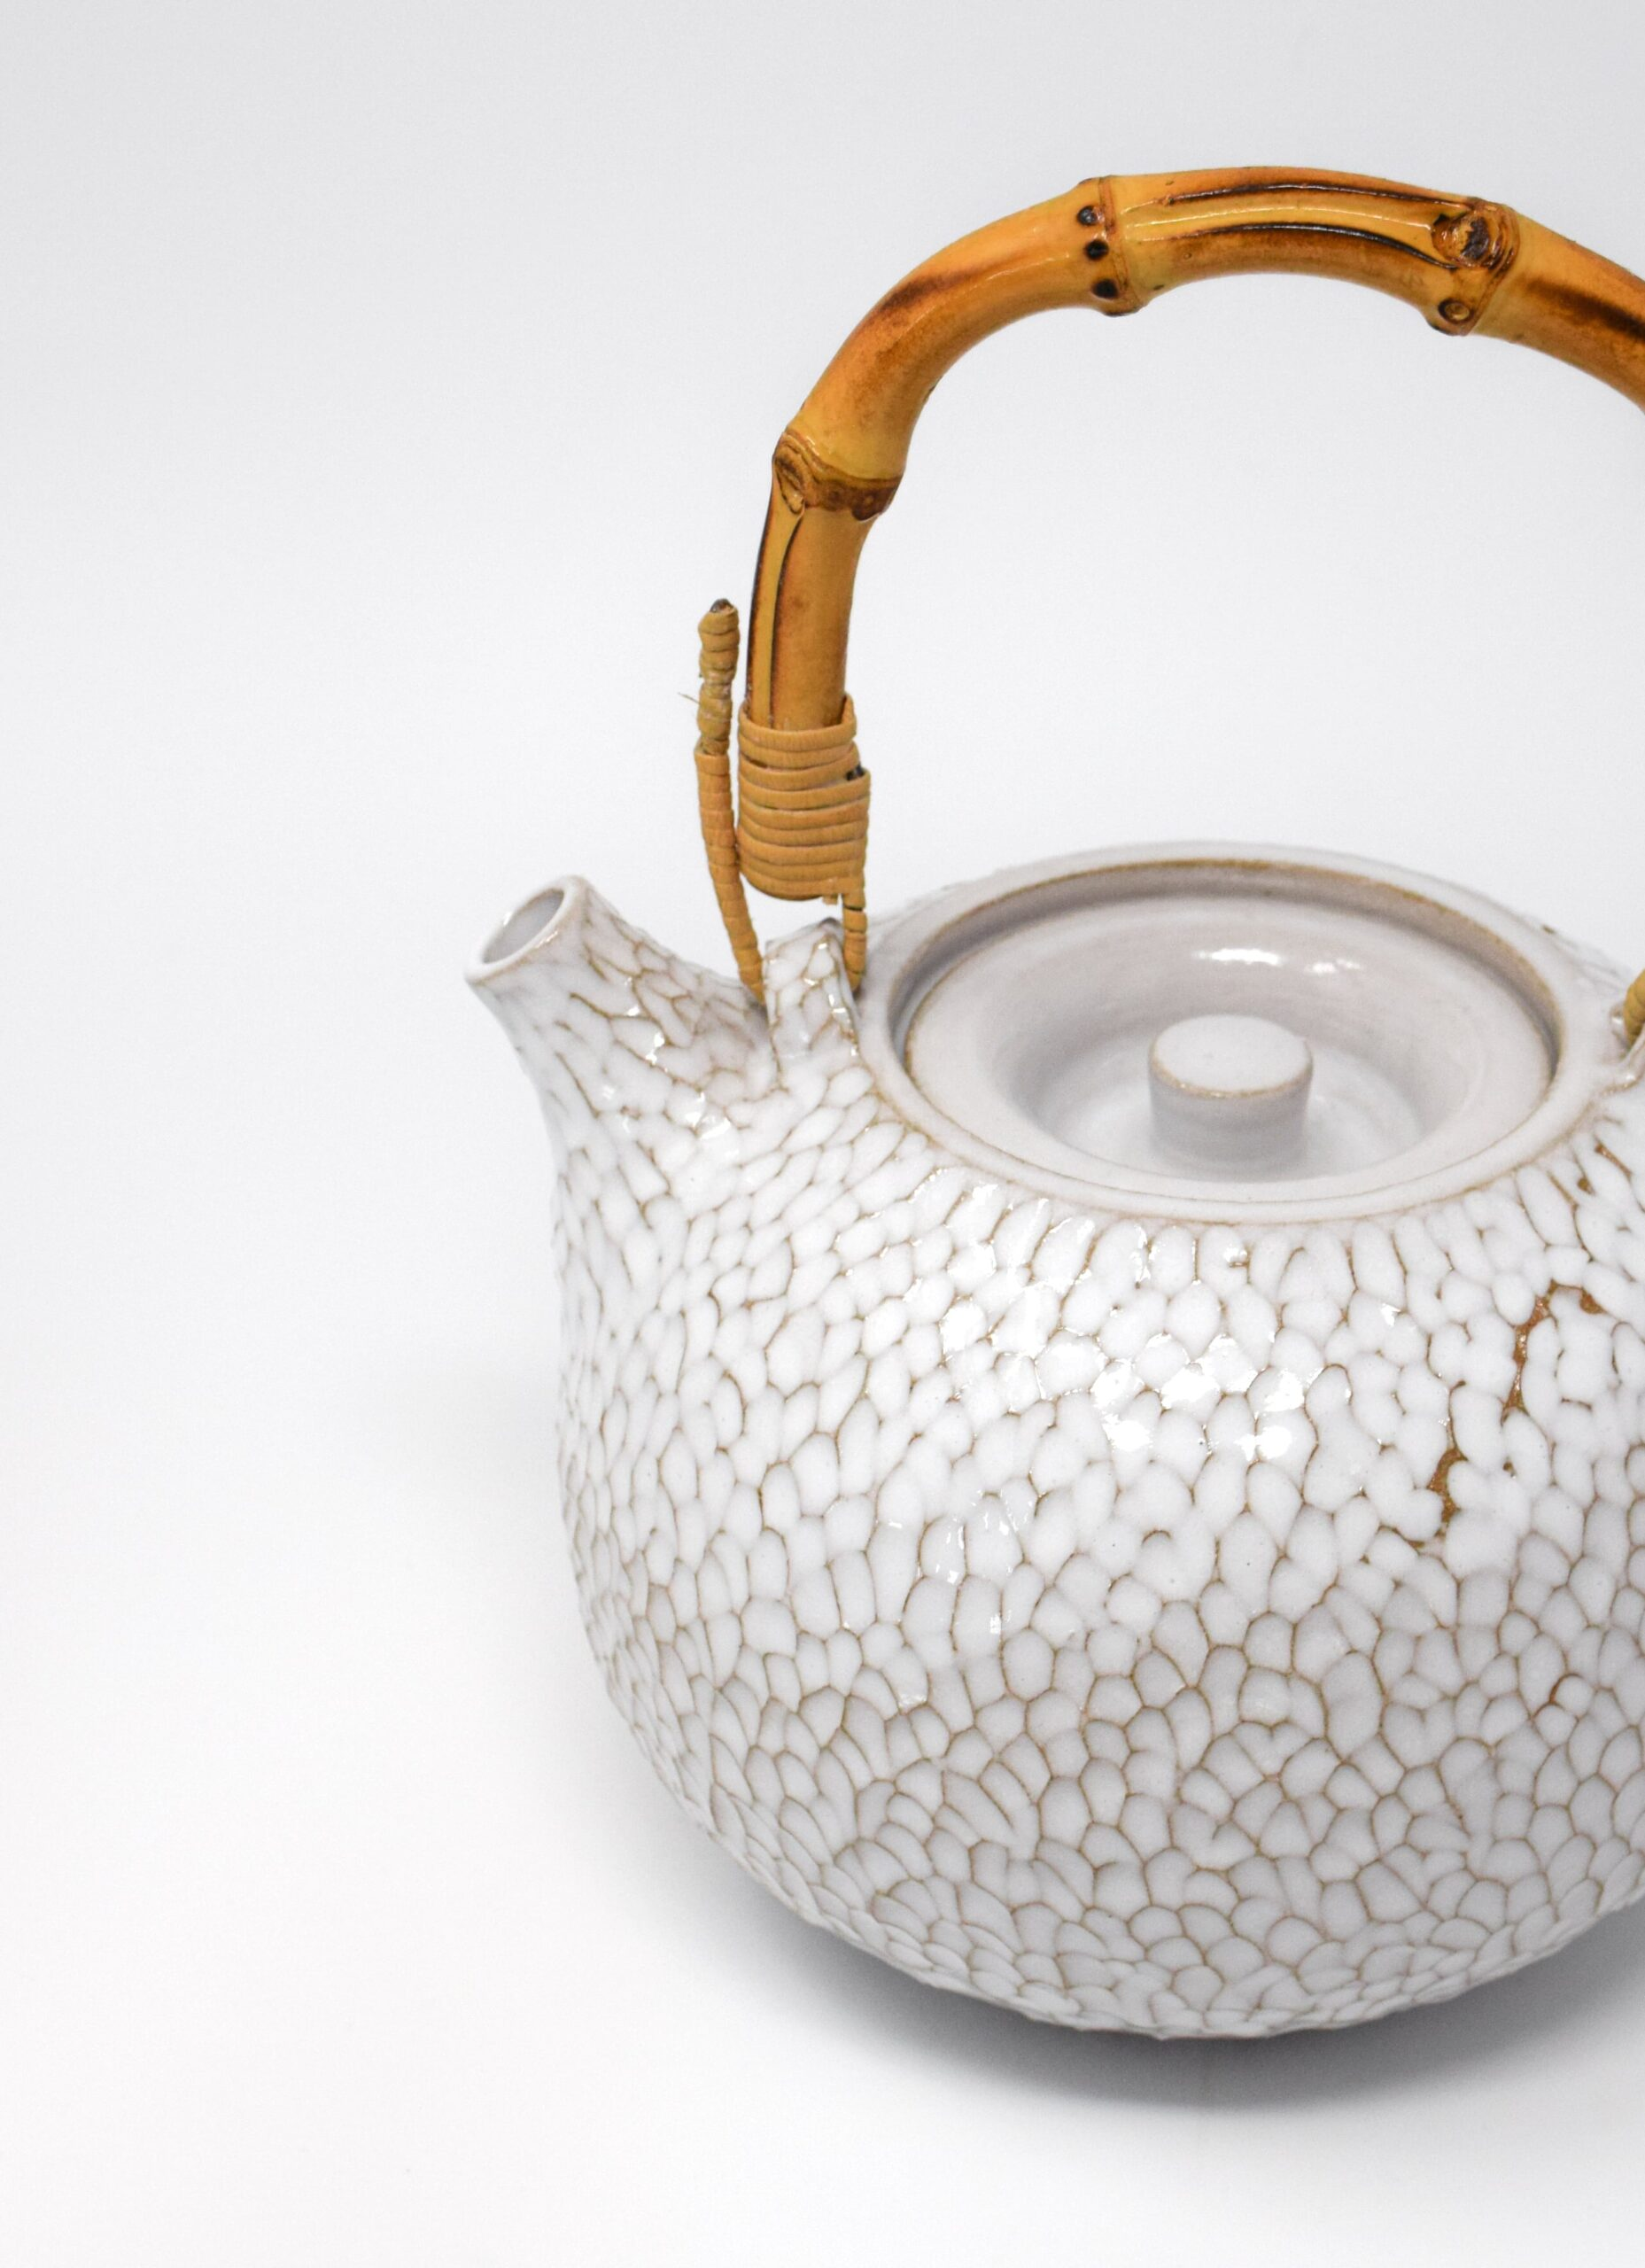 Aurore Vienna - Carved Ceramic Teapot with Bamboo Handle - white